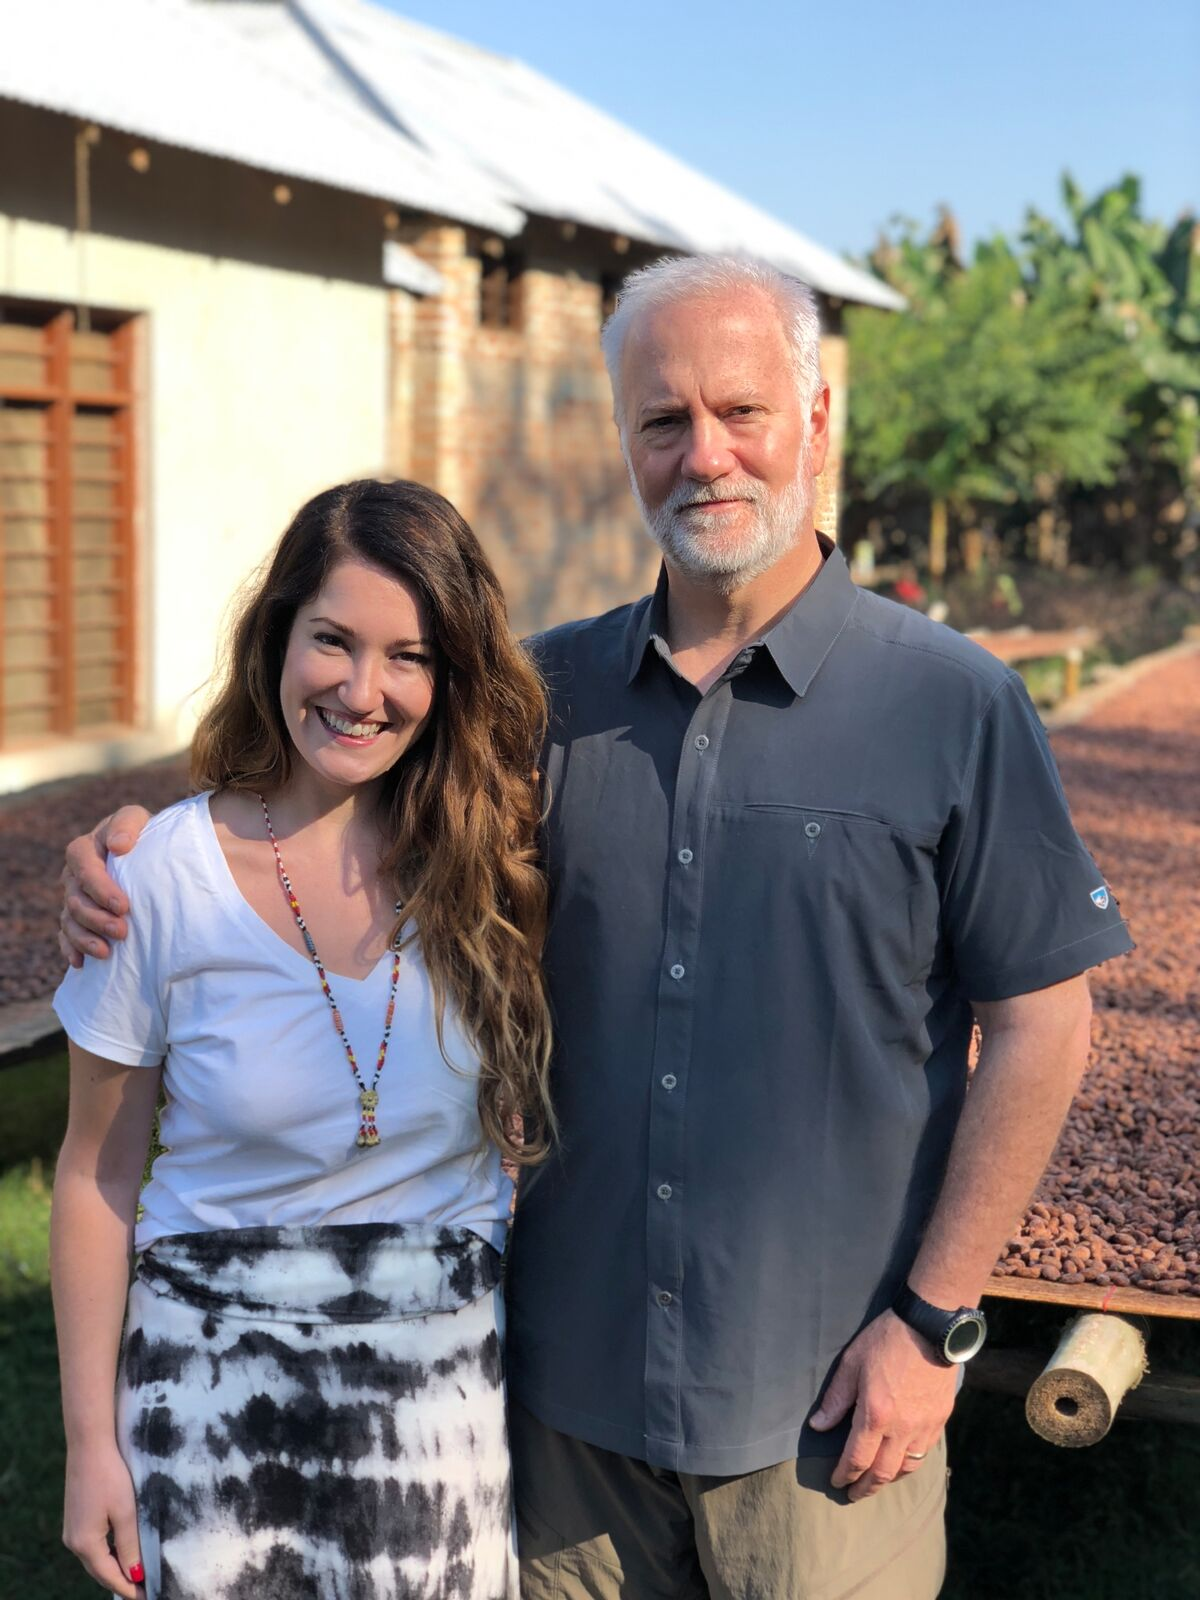 Lawren with her father and business partner Shawn Askinosie. photo credit: Askinosie Chocolate